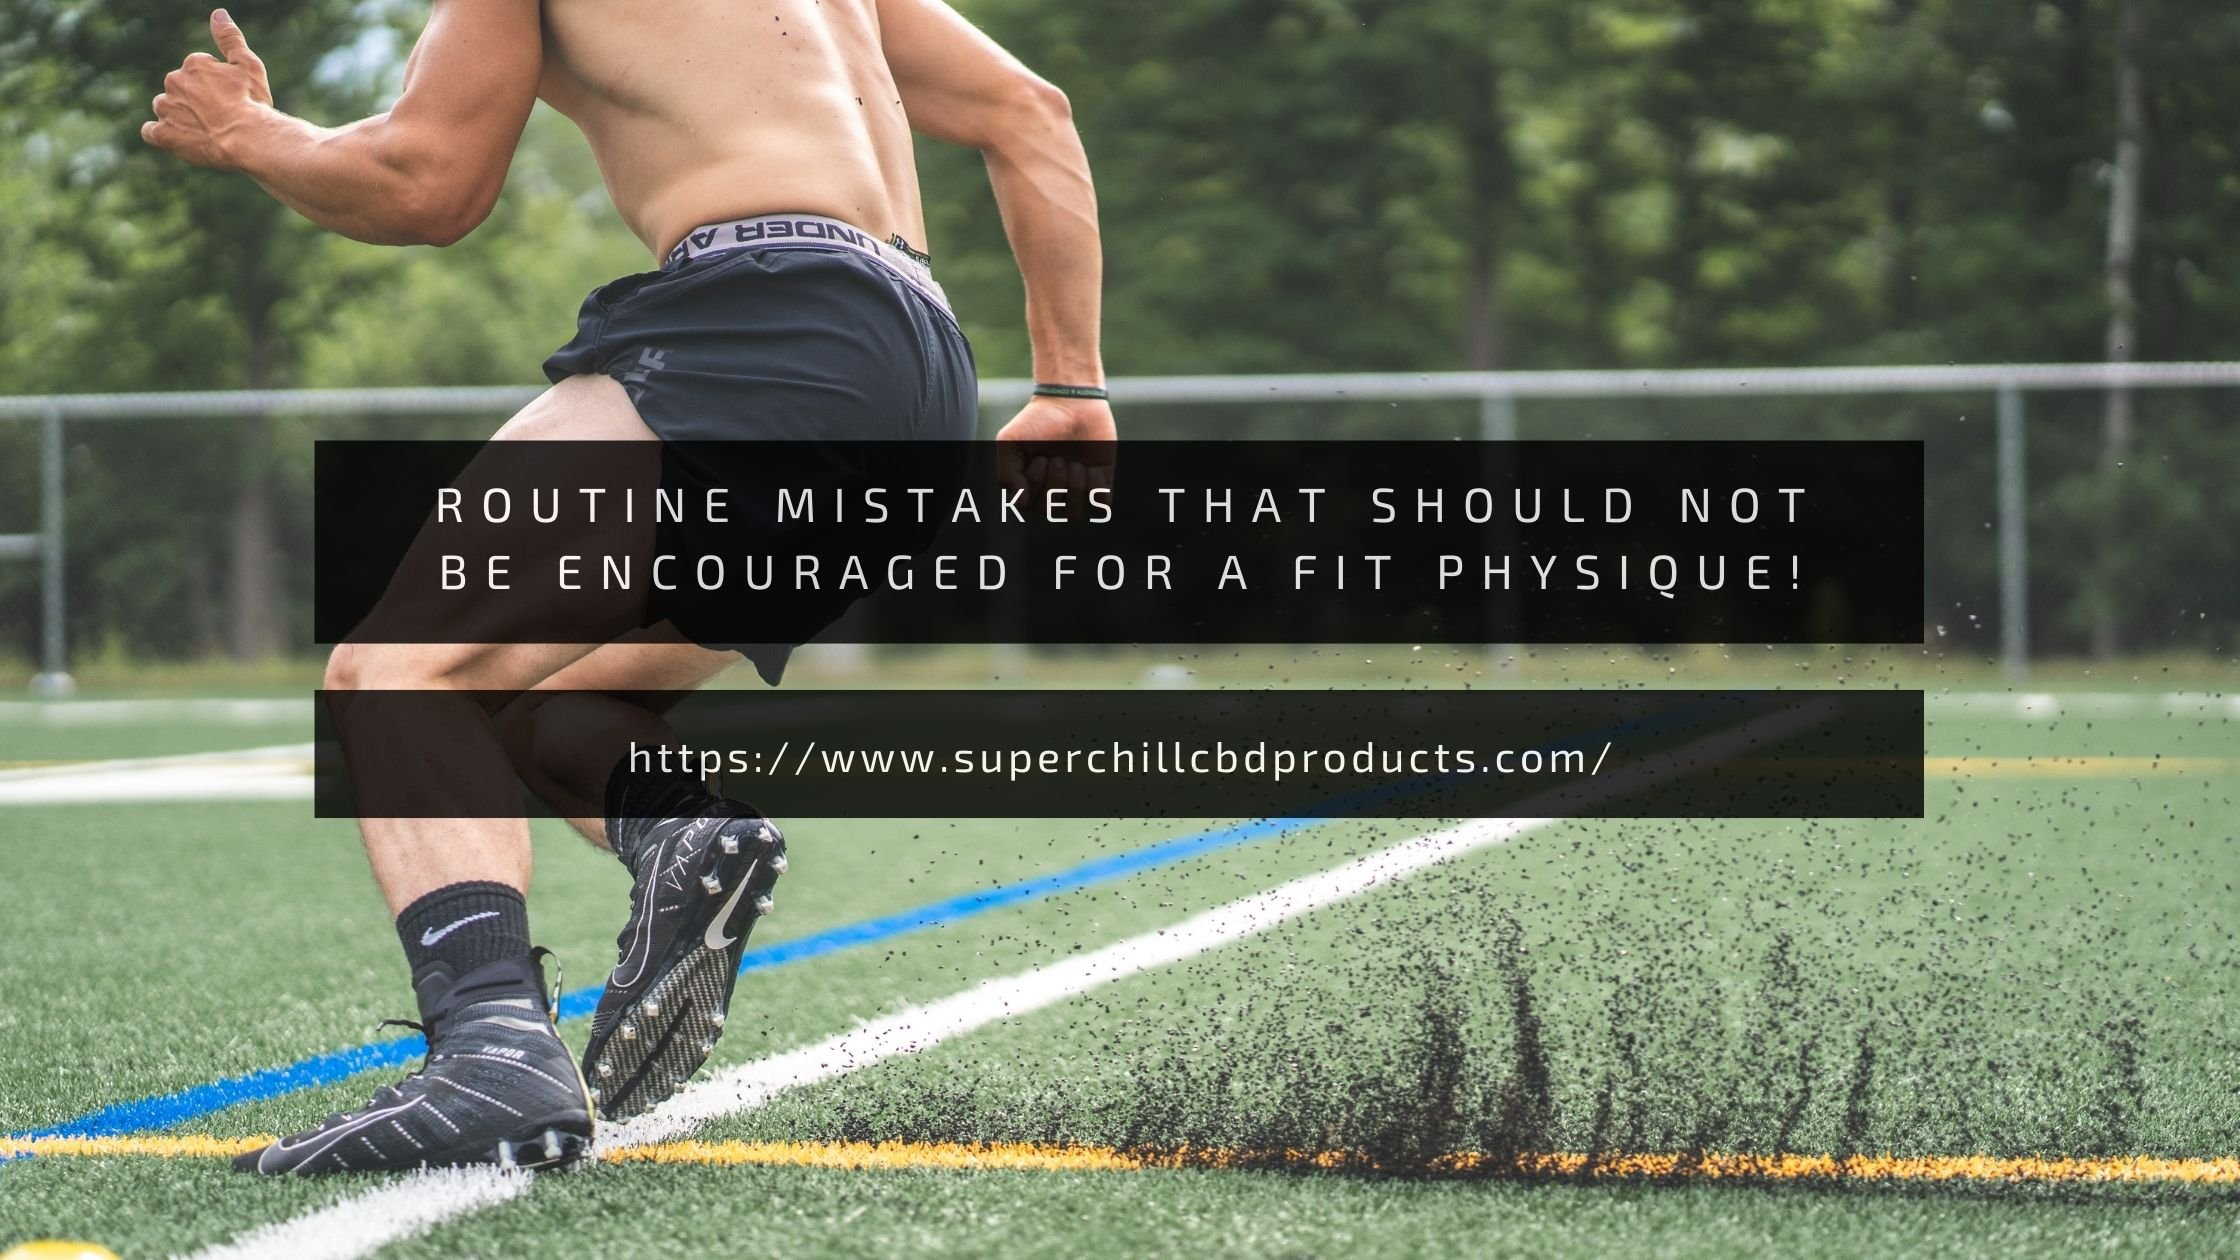 Routine Mistakes That Should Not Be Encouraged For A Fit Physique!